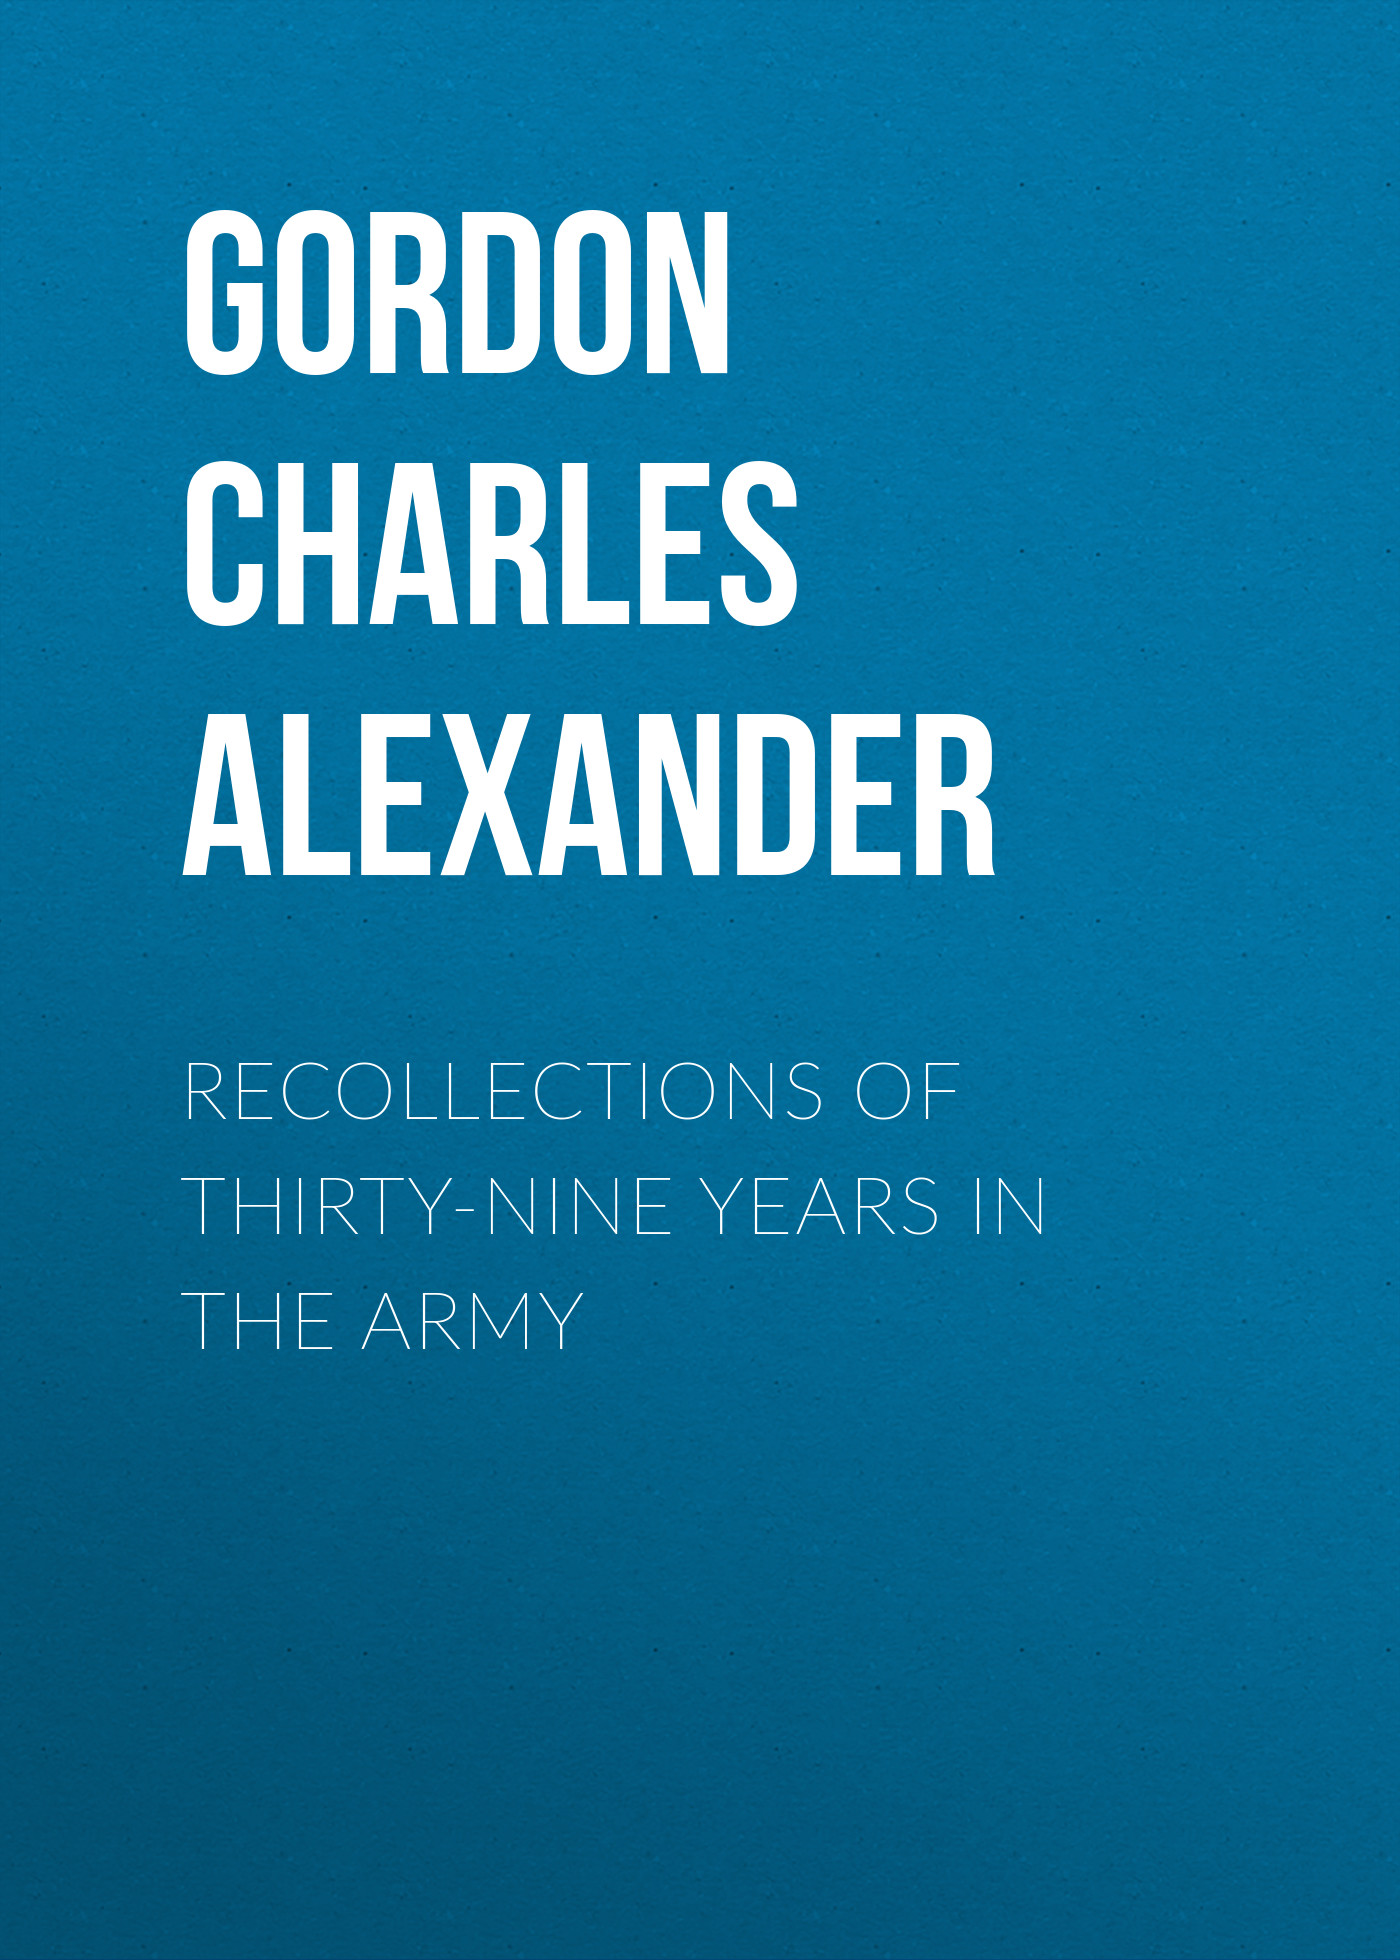 Gordon Charles Alexander Recollections of Thirty-nine Years in the Army eva woods the thirty list